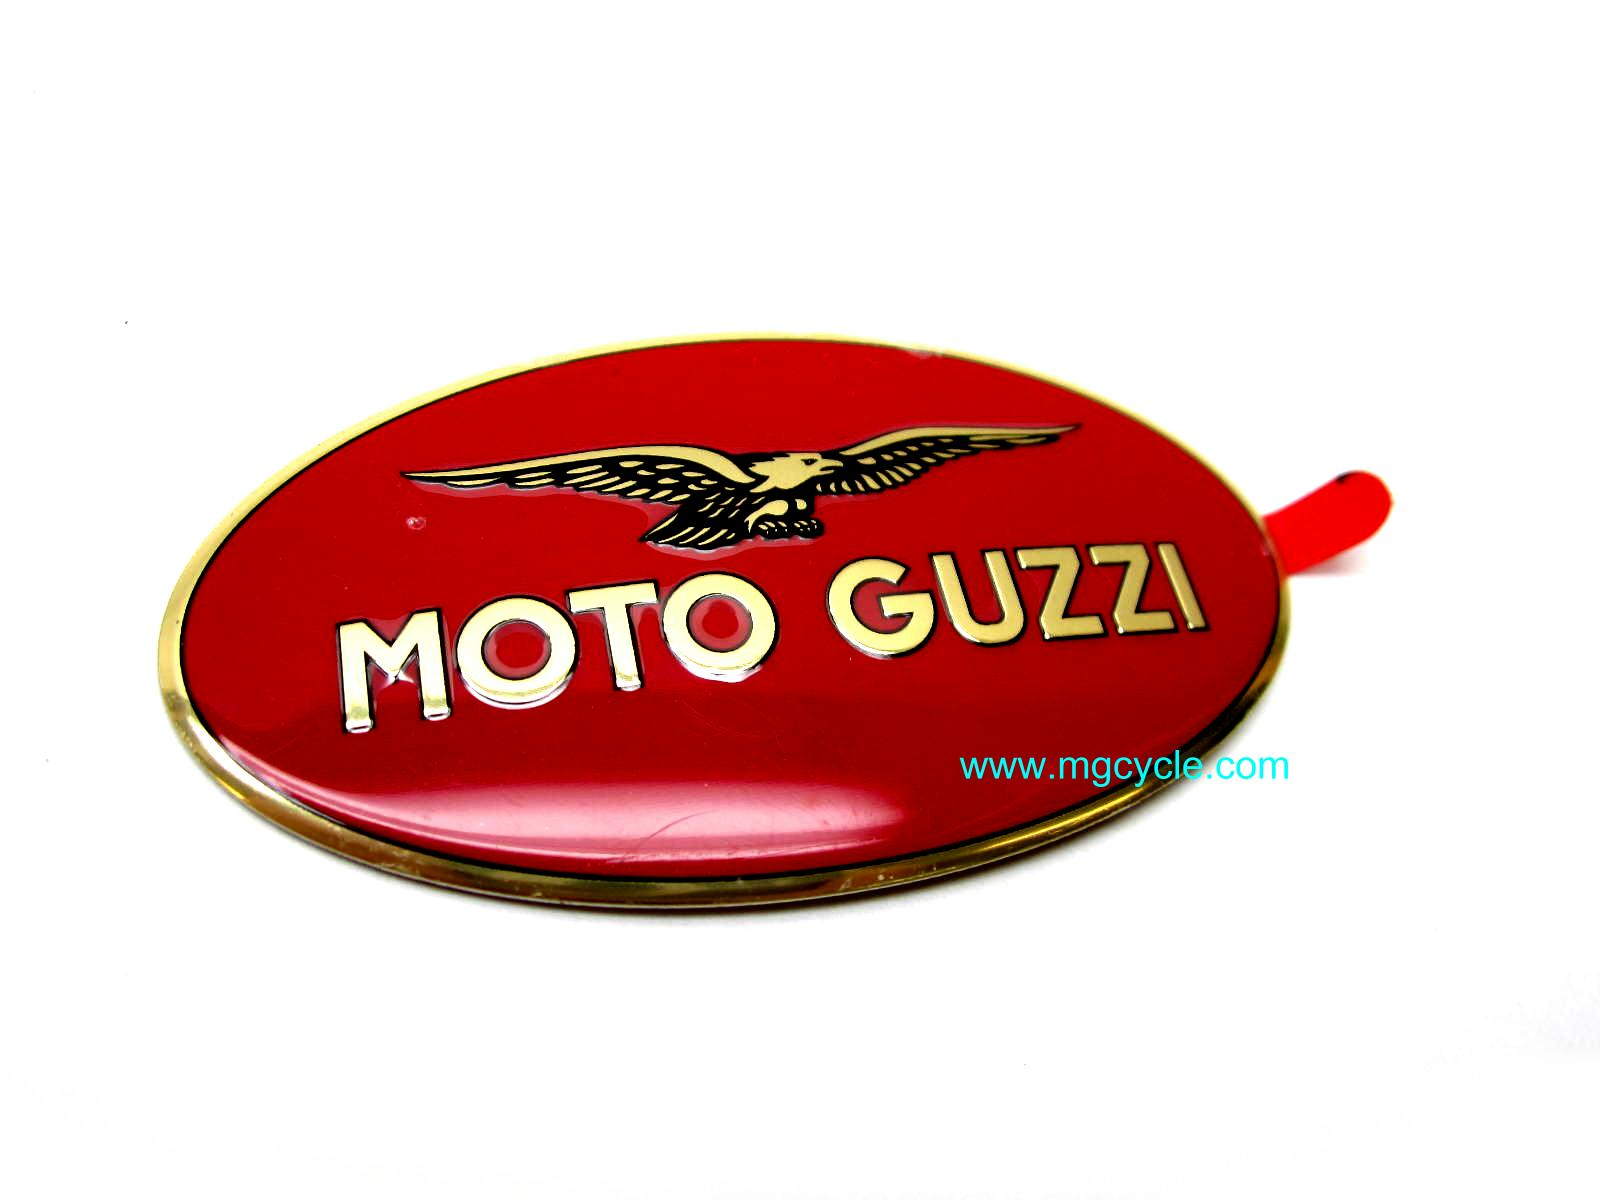 fuel tank emblem, Griso, Norge, Stelvio, Bellagio, right side